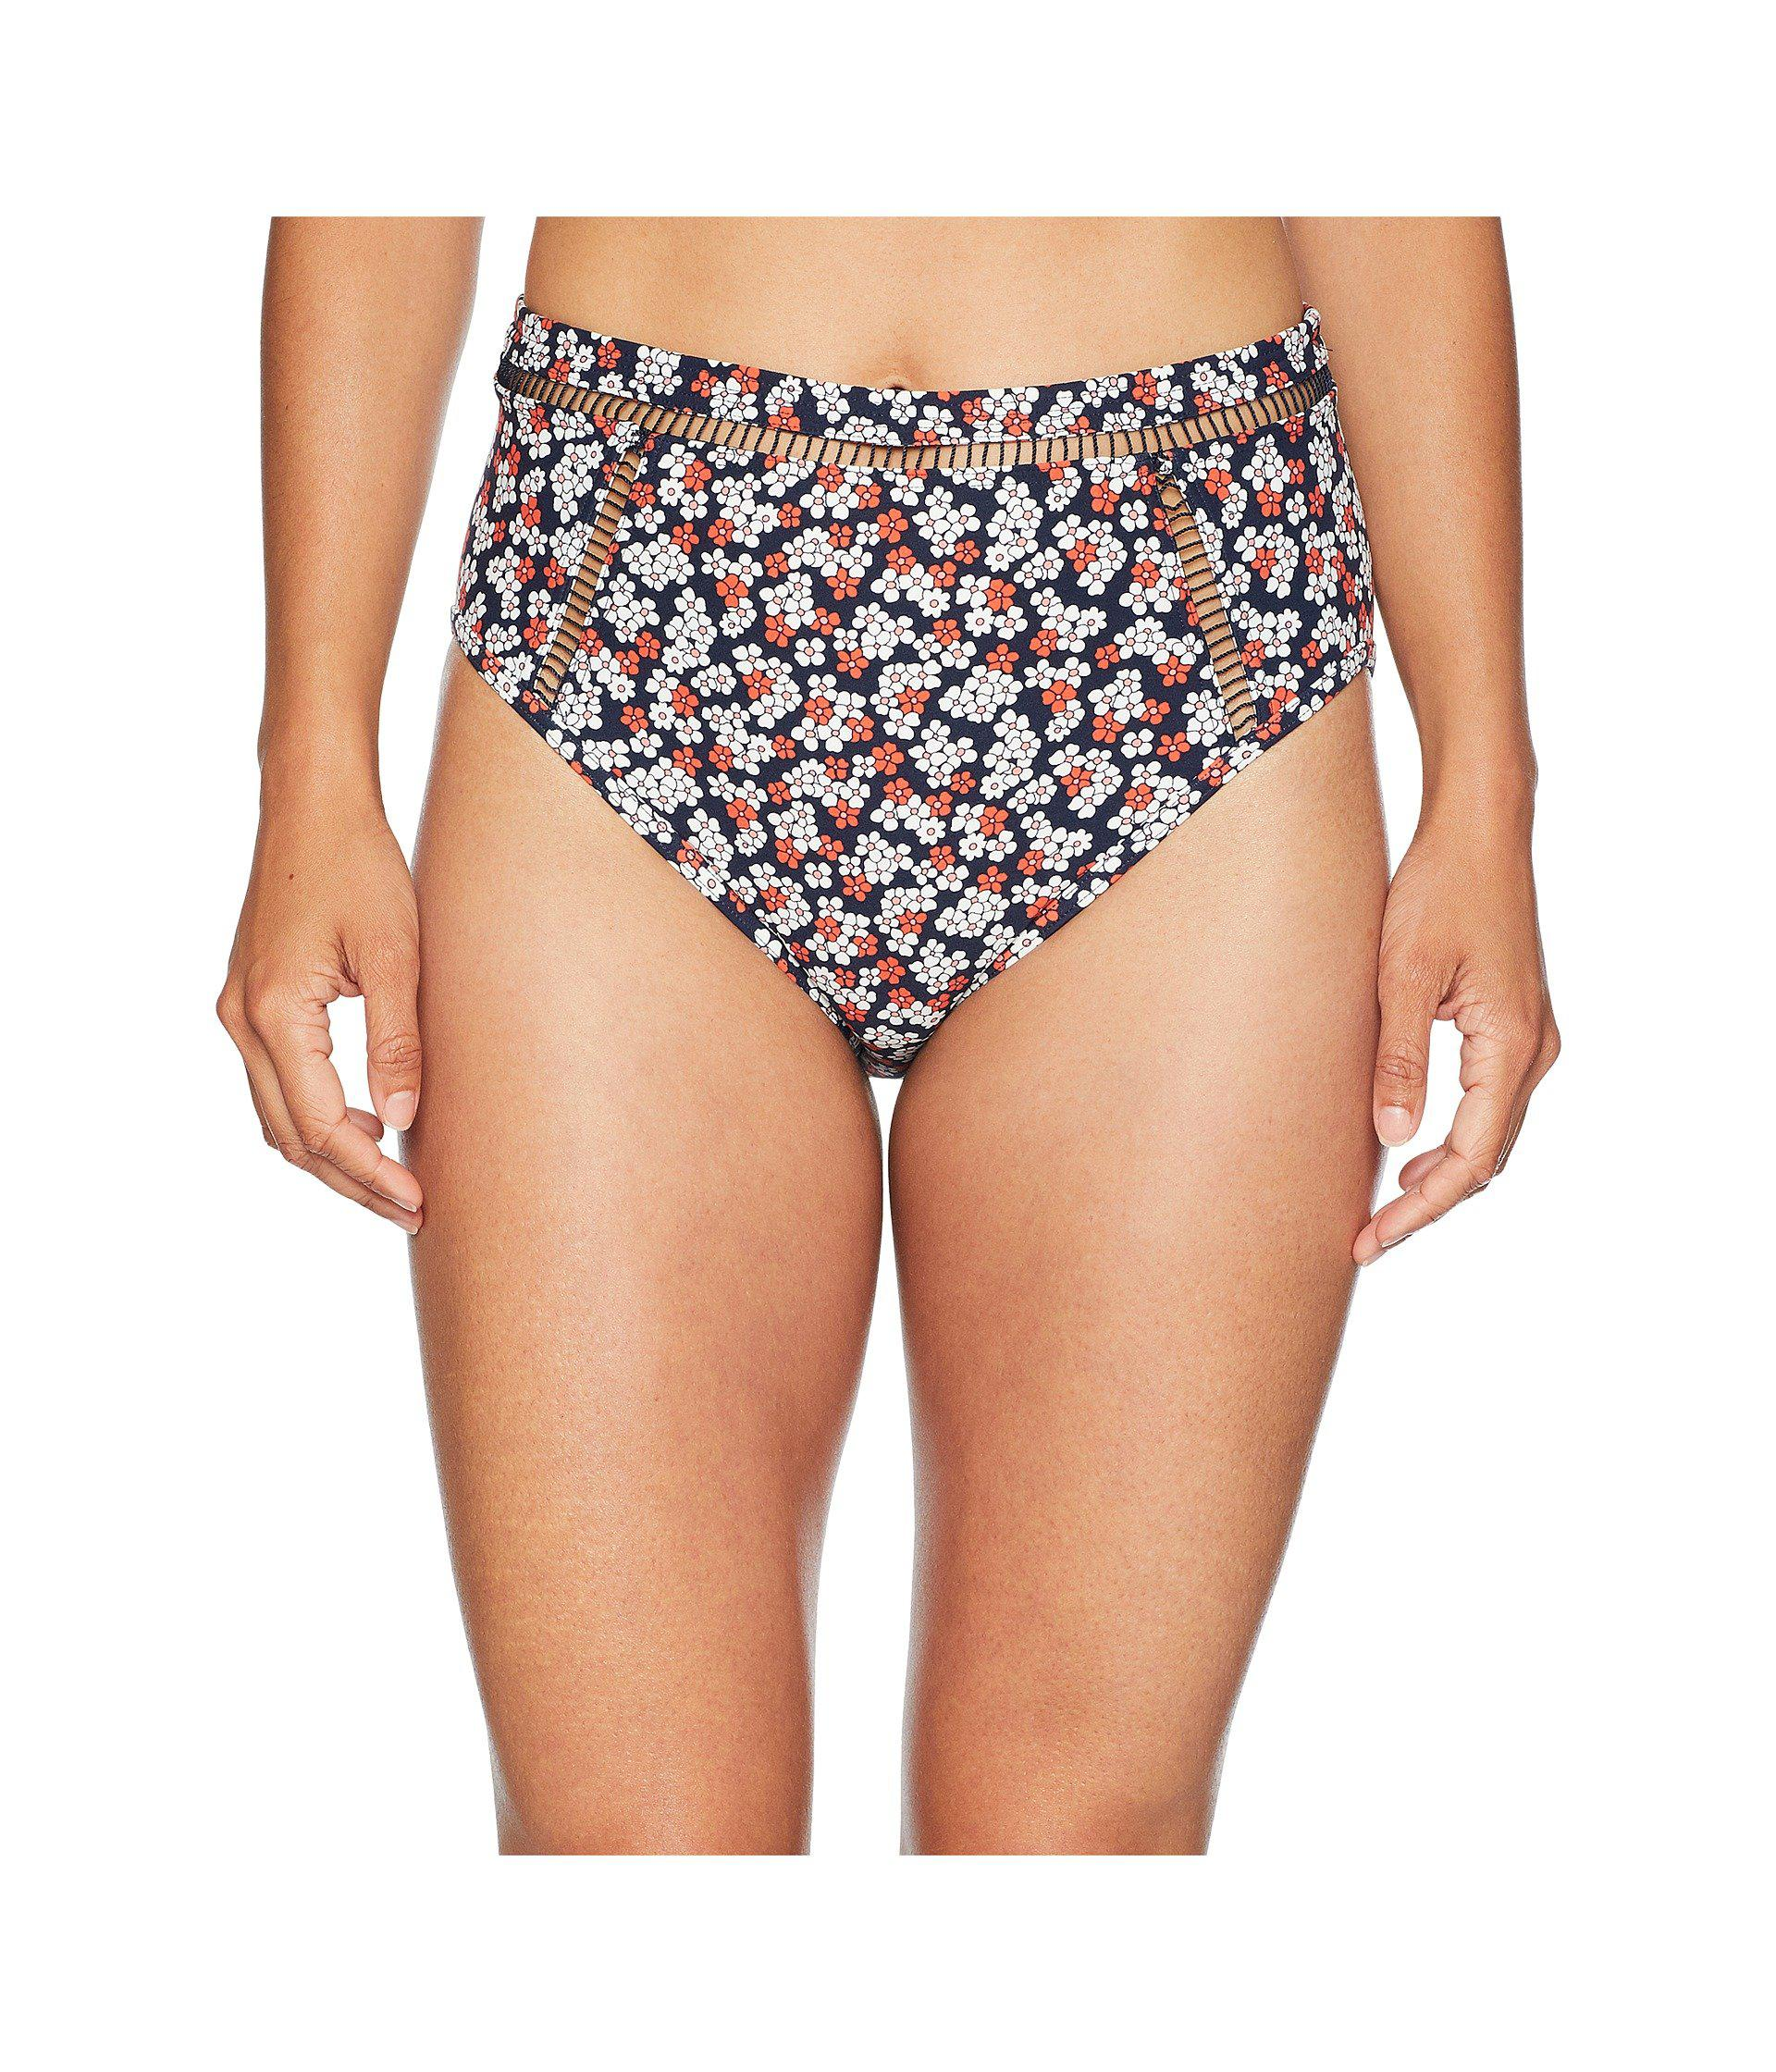 97f9a8215e370 Gallery. Previously sold at: 6PM, Zappos · Women's High Waisted Bikini  Bottoms